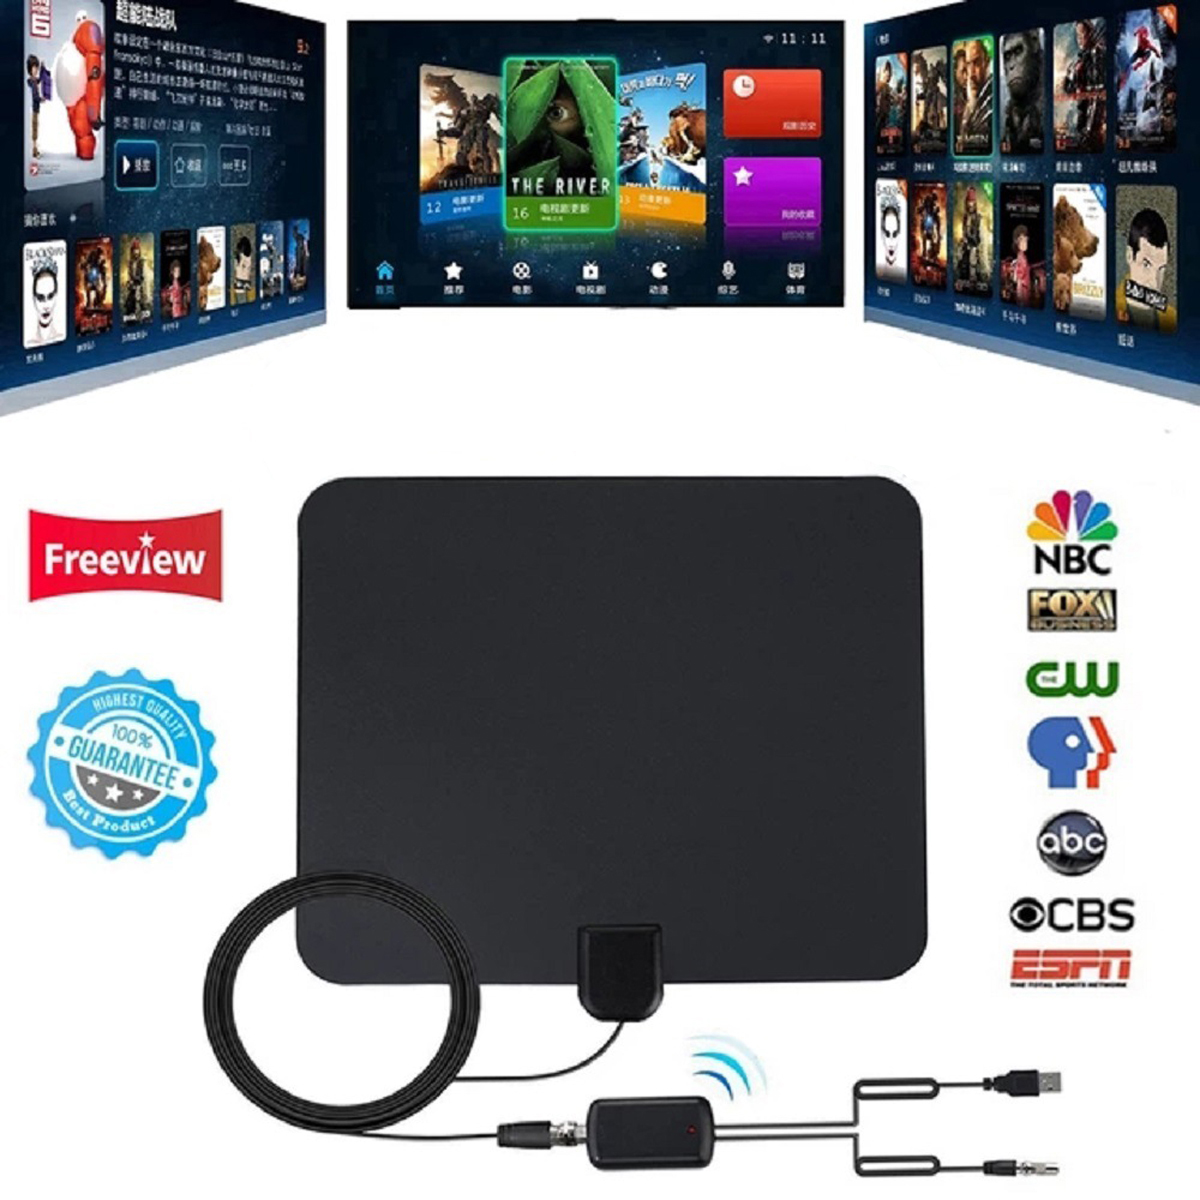 Indoor Digital HDTV TV Antenna Aerial Amplified 100 Mile Range Freeview 1080P Thin Flat Skylink Cable